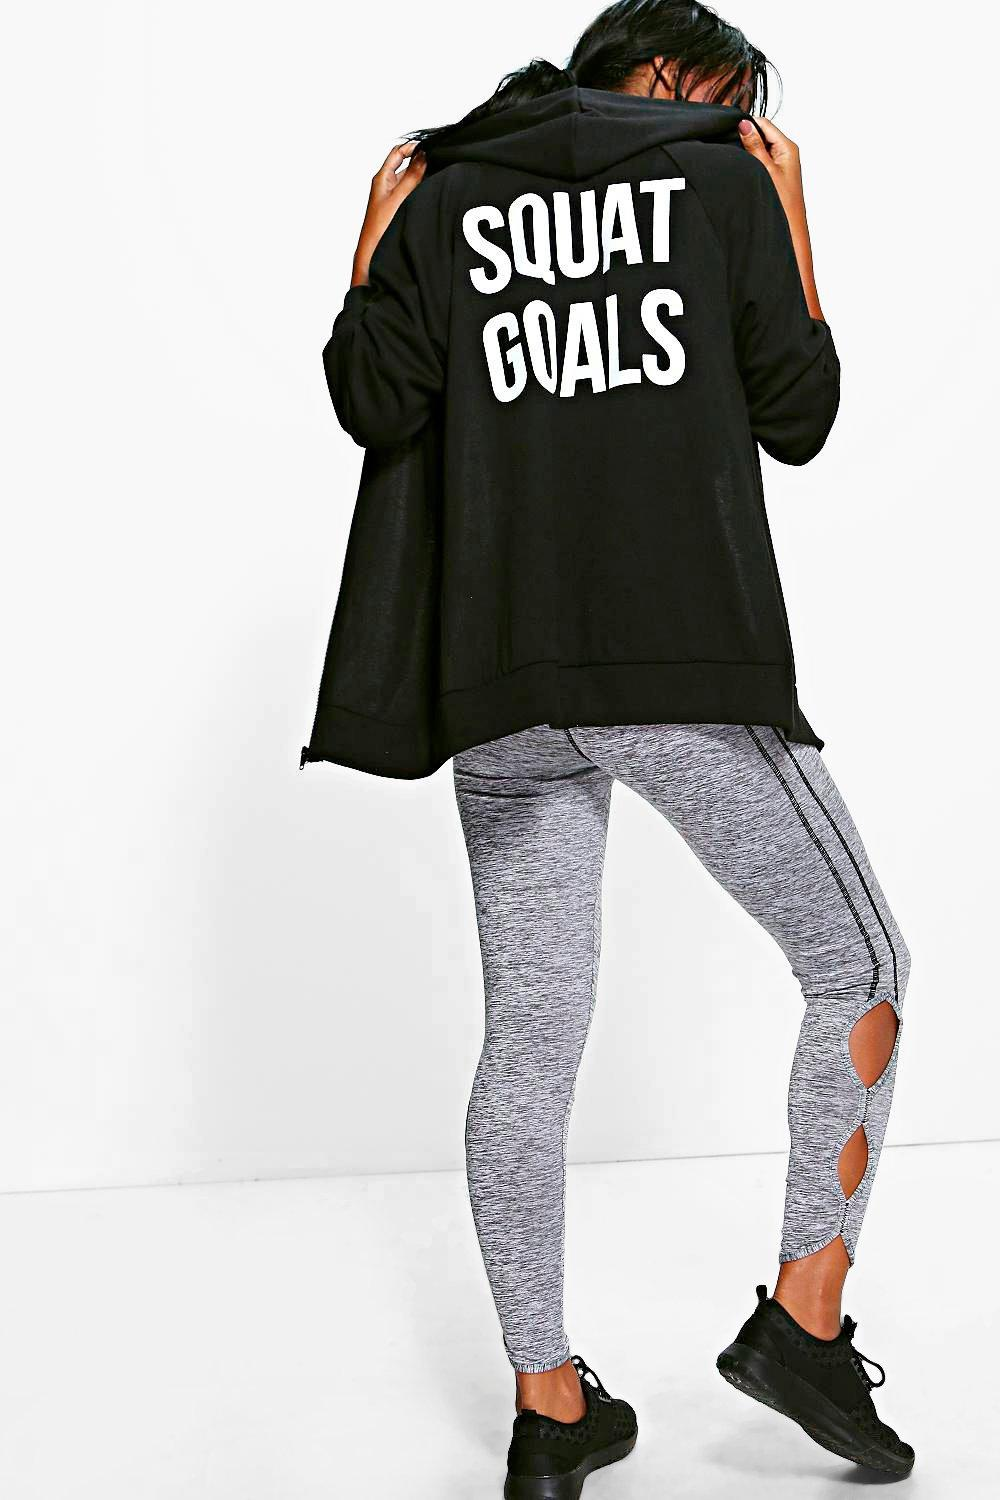 Madison Squat Goals Hoodie